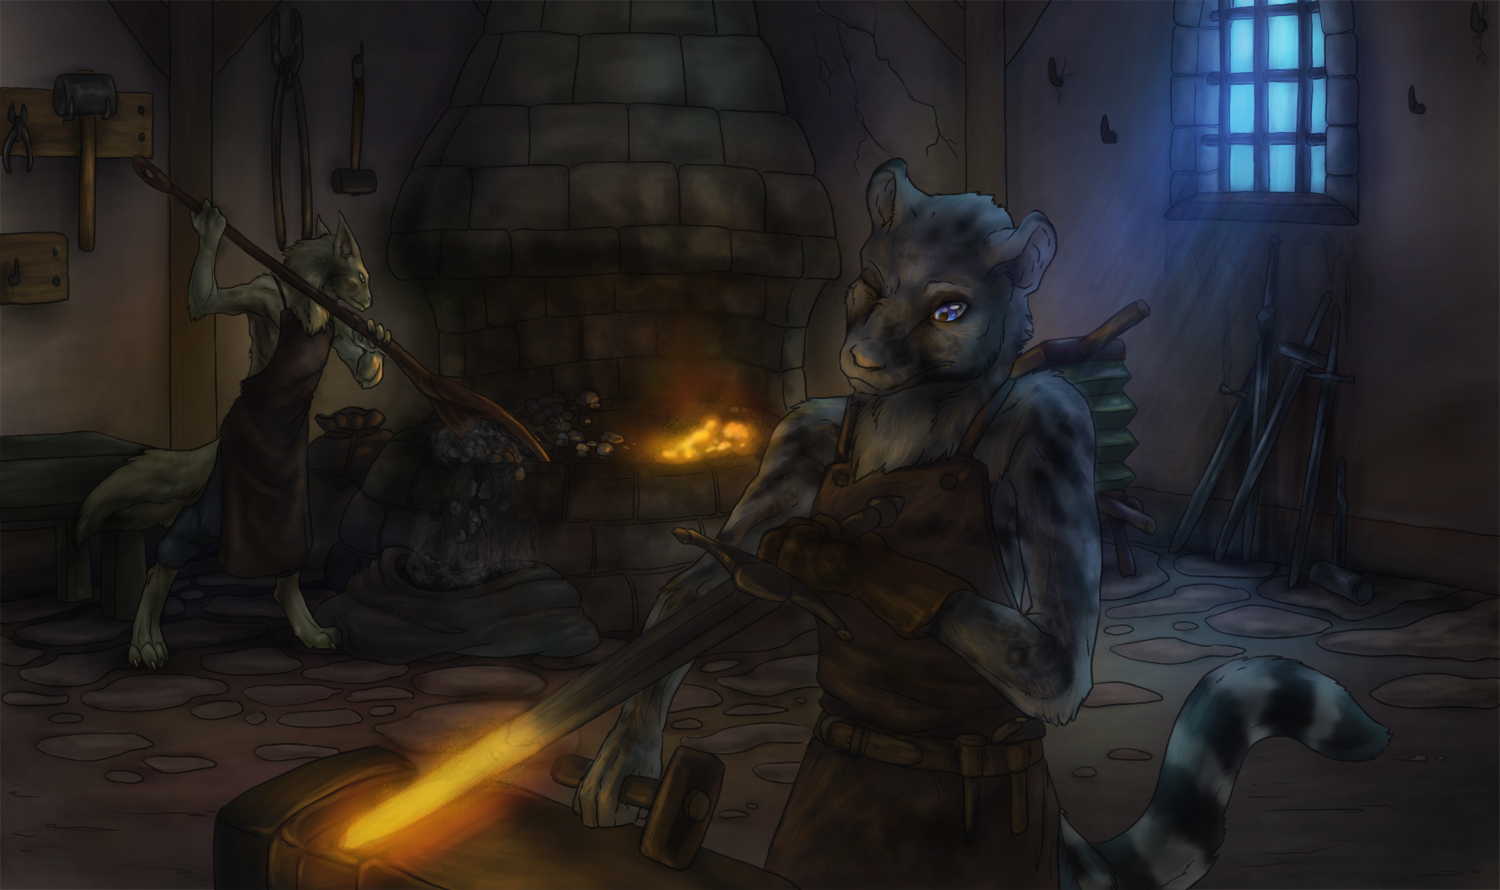 Commission: Blacksmith by 13blackdragons